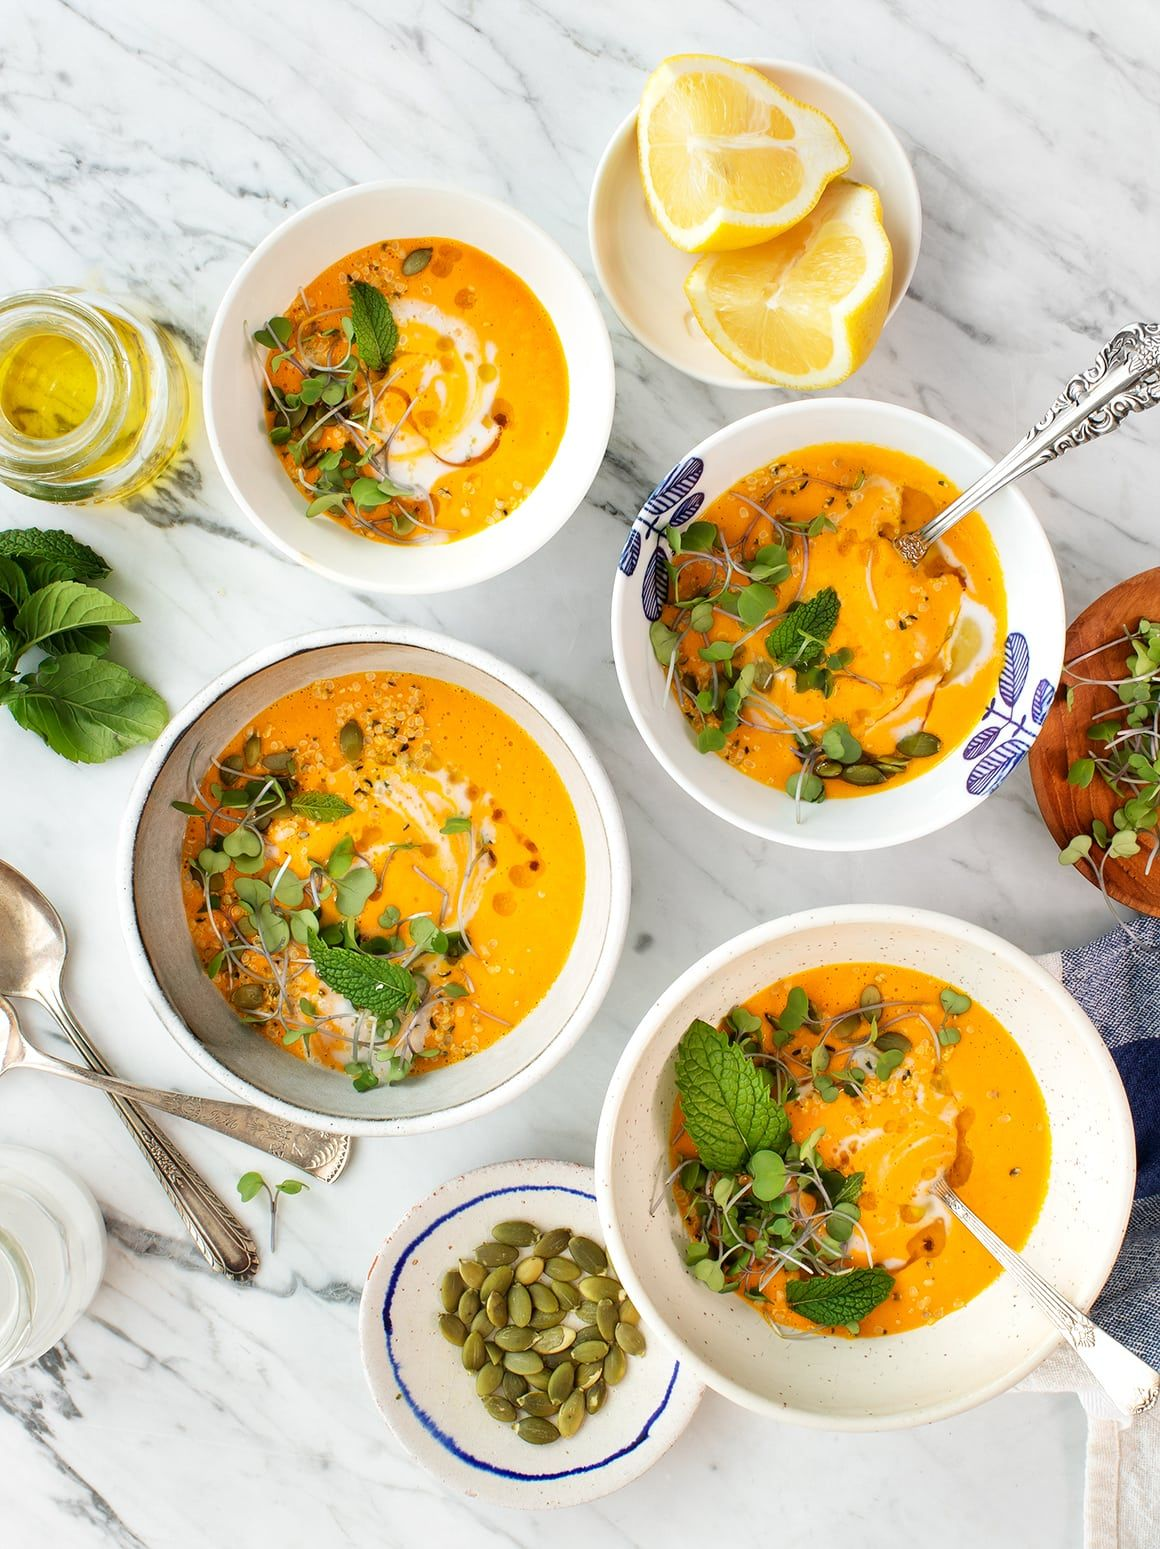 Carrot Coconut Gazpacho with Lemongrass Carrot Coconut Gazpacho with Lemongrass is DELICIOUS warm or cold and perfectly creamy without dairy! This healthy vegan soup takes under 15 minutes to make and keeps well! An all-time weeknight favorite! | Love and Lemons